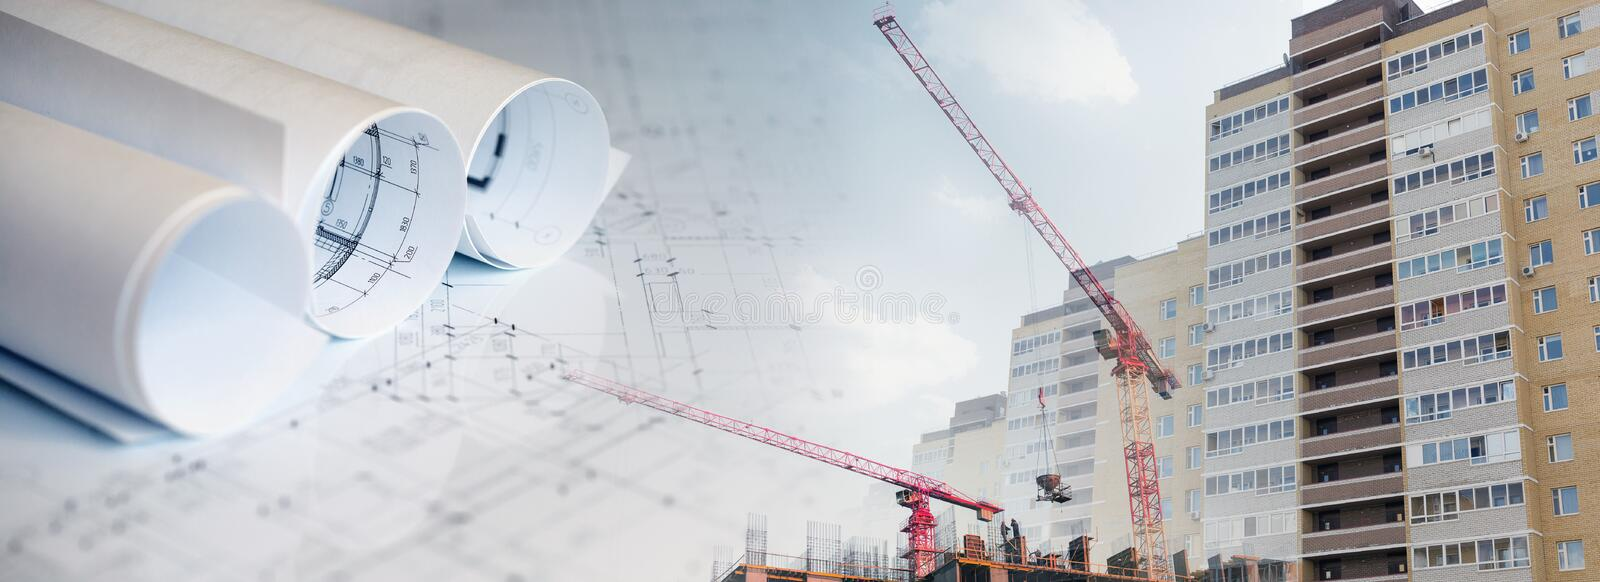 Collage with construction plans, cranes. And buildings royalty free stock photography